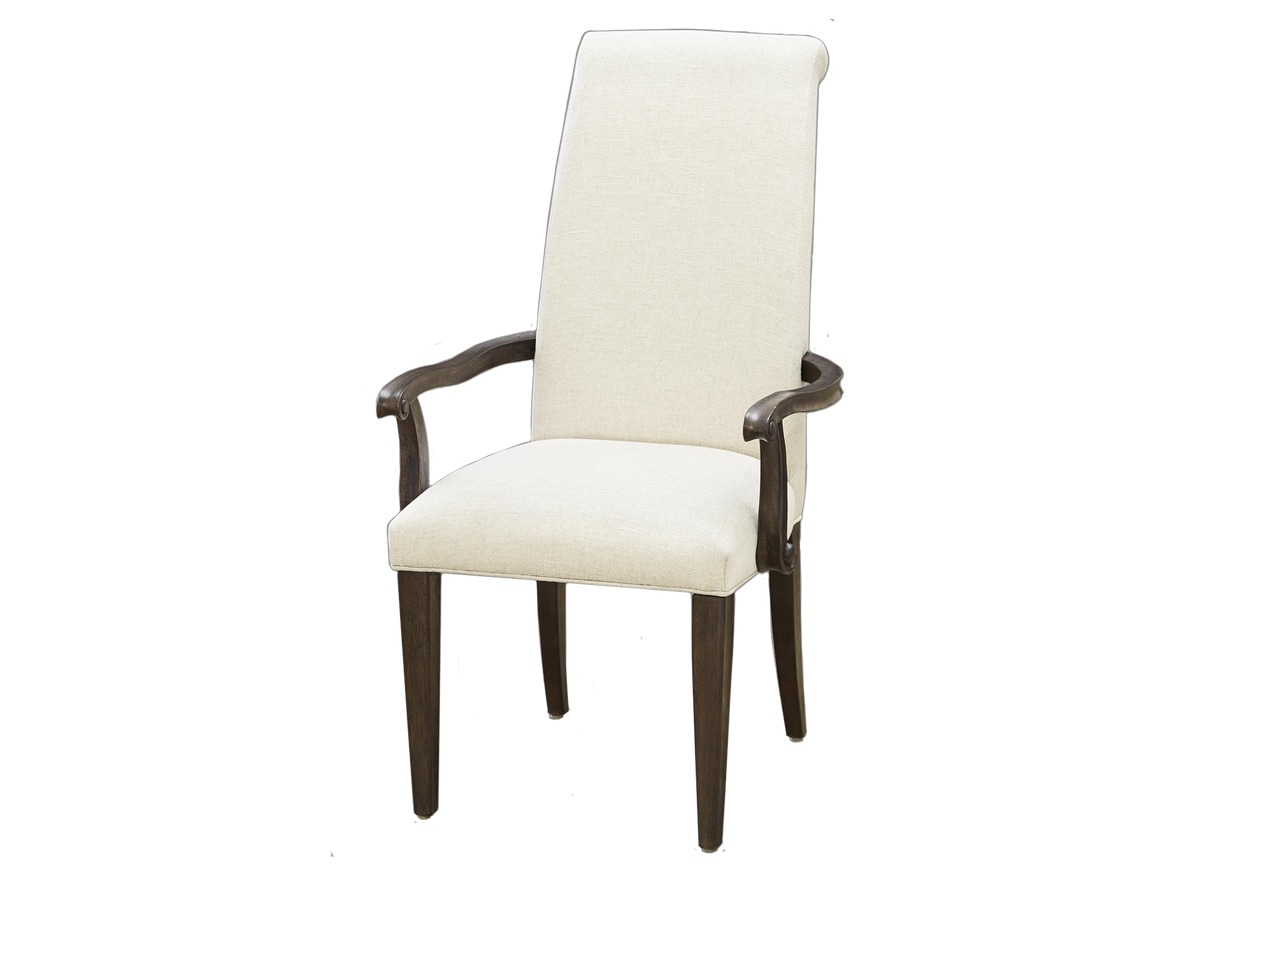 upholstered dining room arm chairs | Pair of 2 Upholstered Dining Arm Chairs